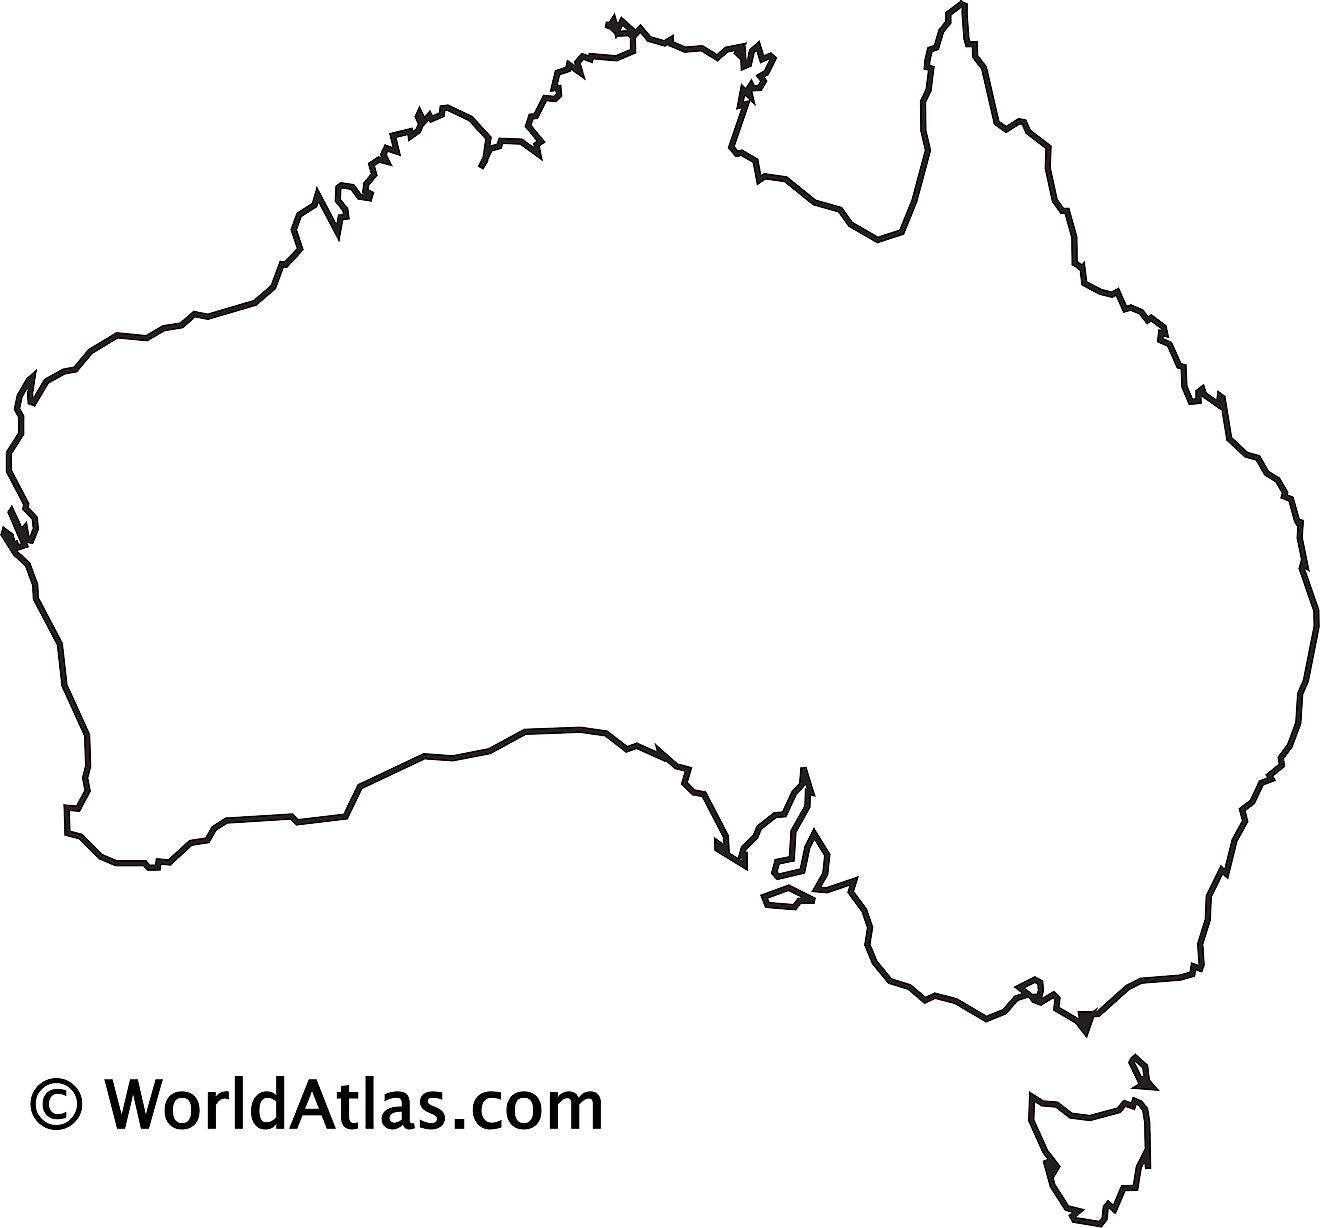 Blank outline map of Australia